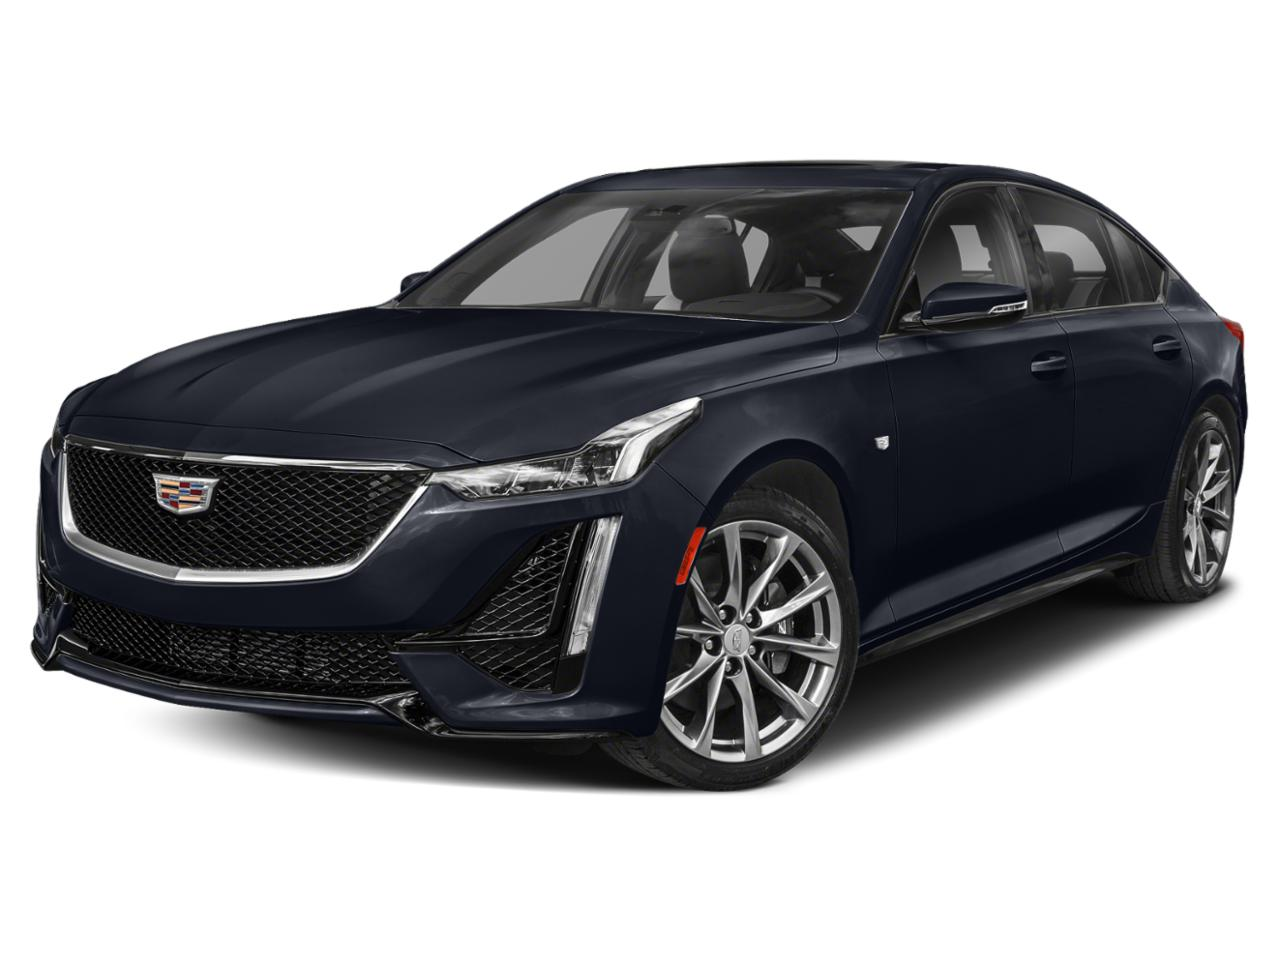 2021 Cadillac CT5 Vehicle Photo in Newtown Square, PA 19073